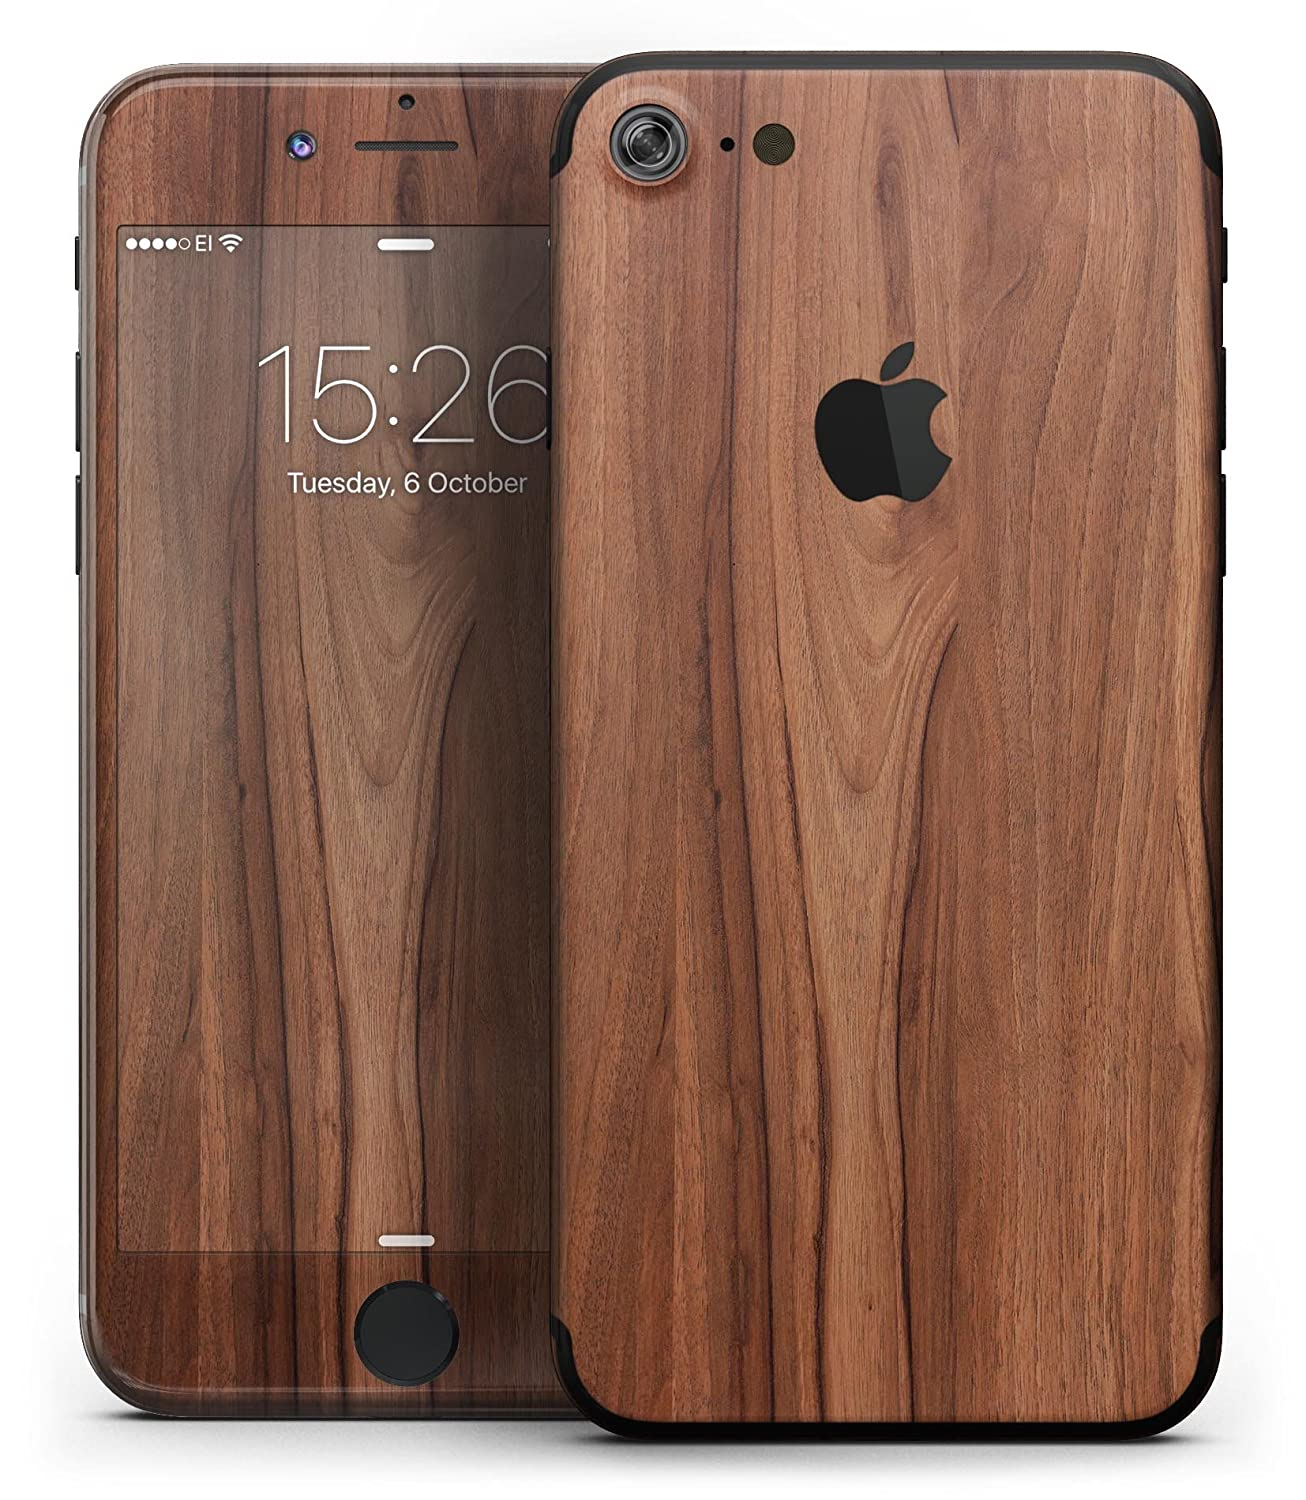 Amazon.com  Wood Pattern Design Skinz Premium Full-Body Wrap Decal Skin-Kit  for the iPhone X - Smooth-Grained Wooden Plank  Cell Phones   Accessories 74190df6ca